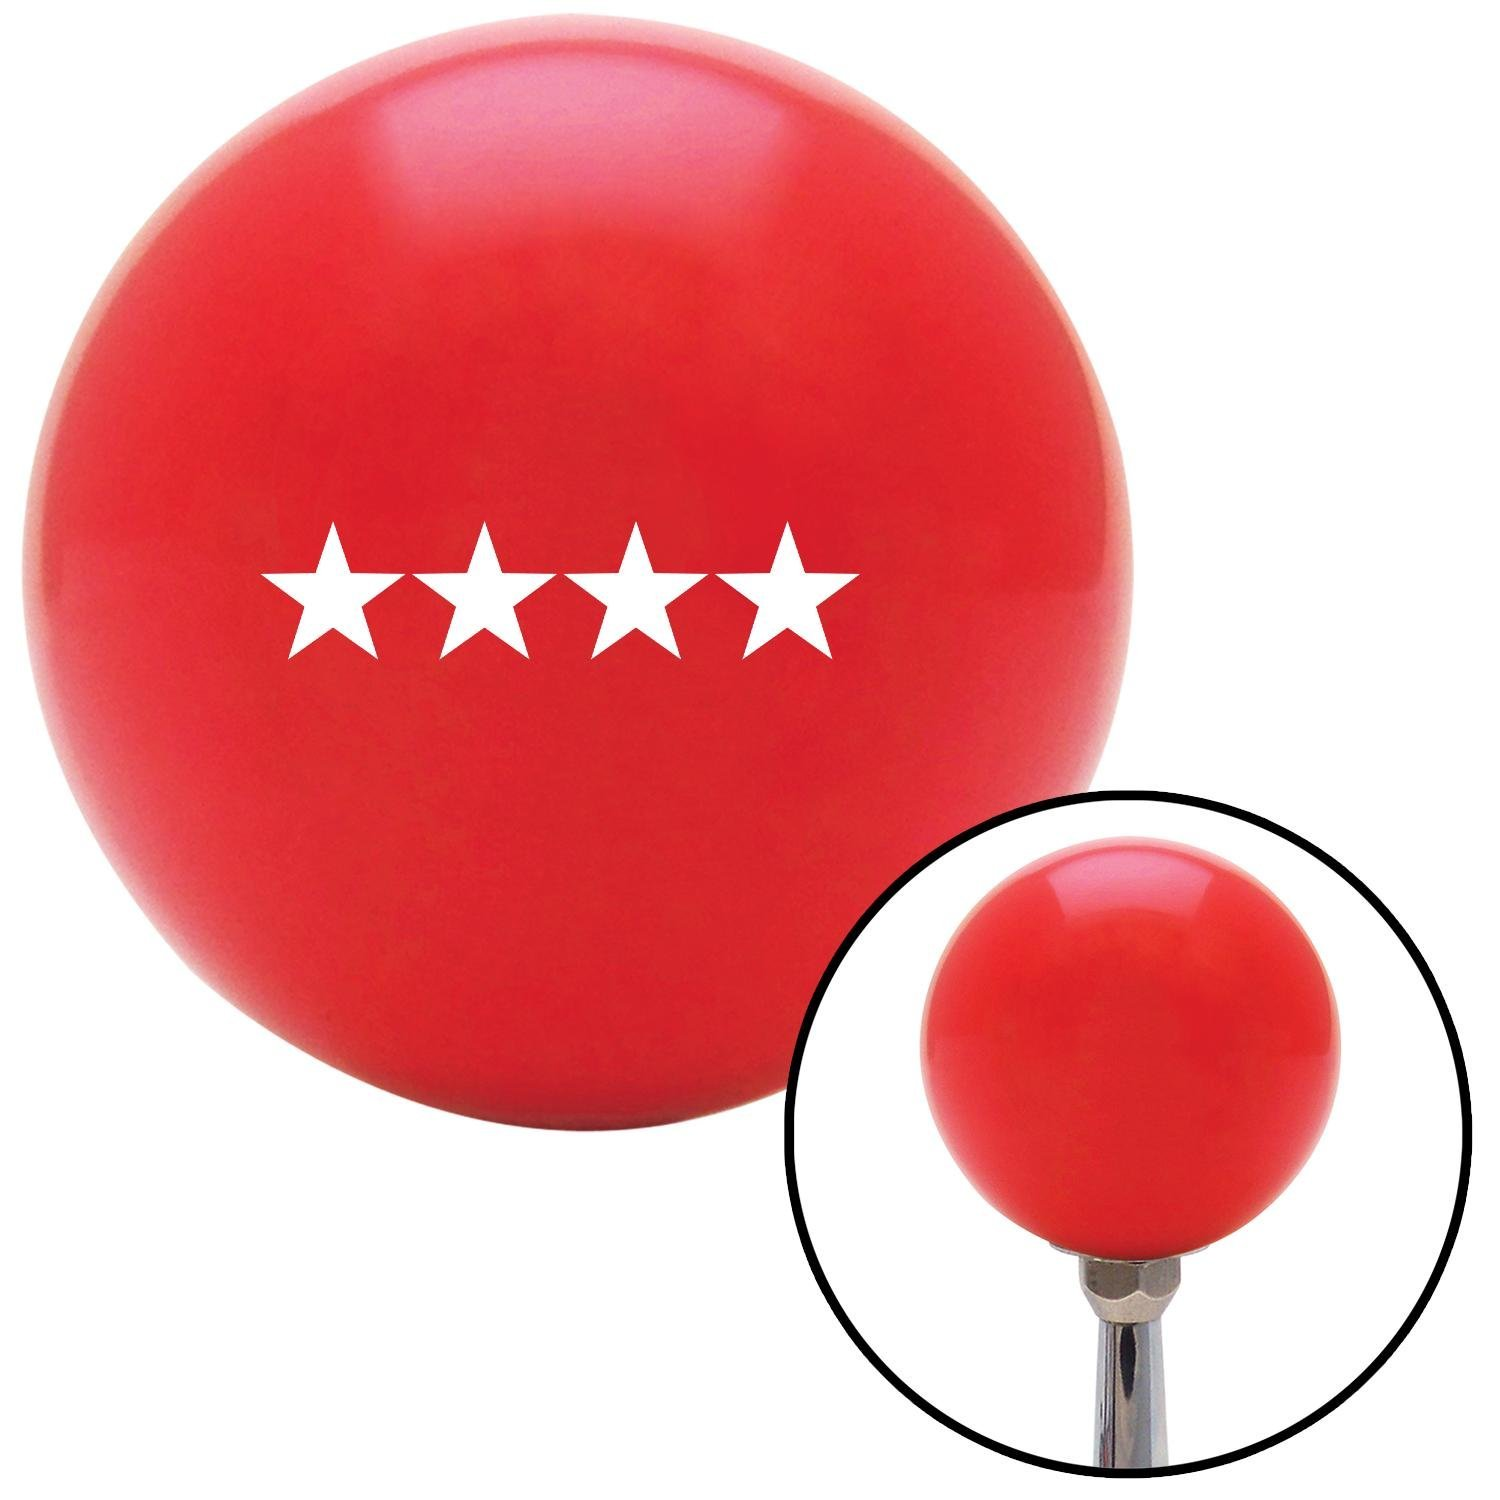 American Shifter 98293 Red Shift Knob with M16 x 1.5 Insert White Admiral